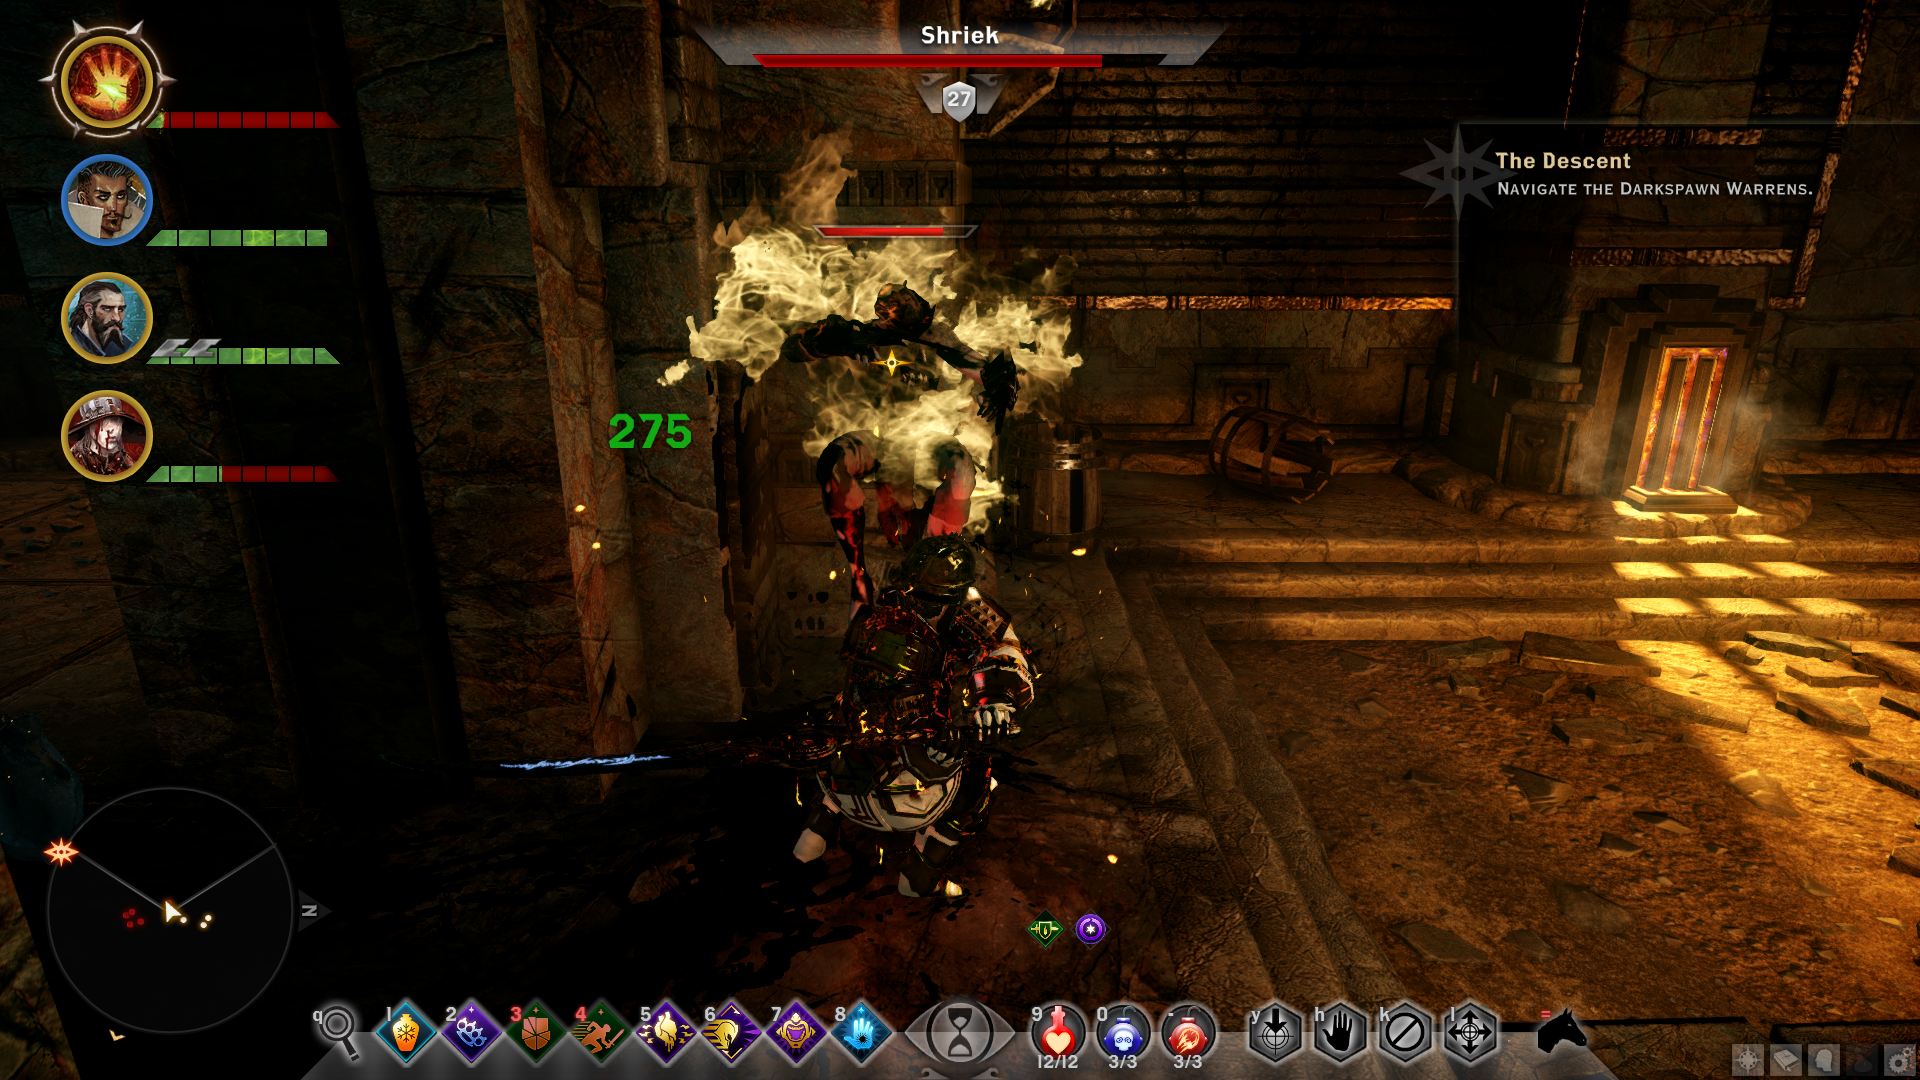 elemental damage for non-staff weapons at dragon age: inquisition